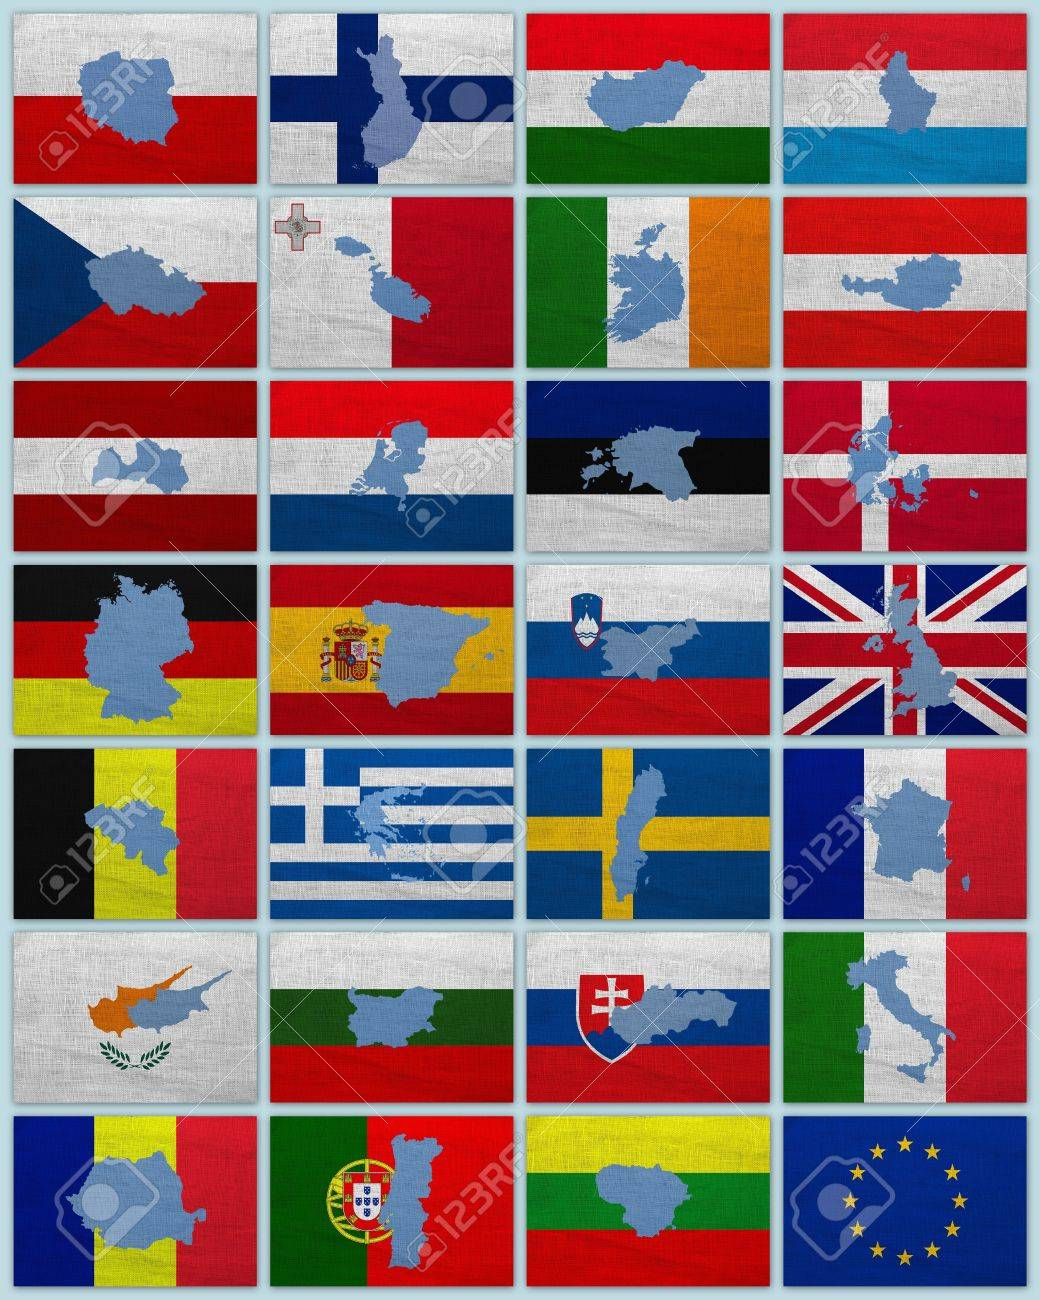 Flags And Maps Of European Union Countries On A Sackcloth Stock